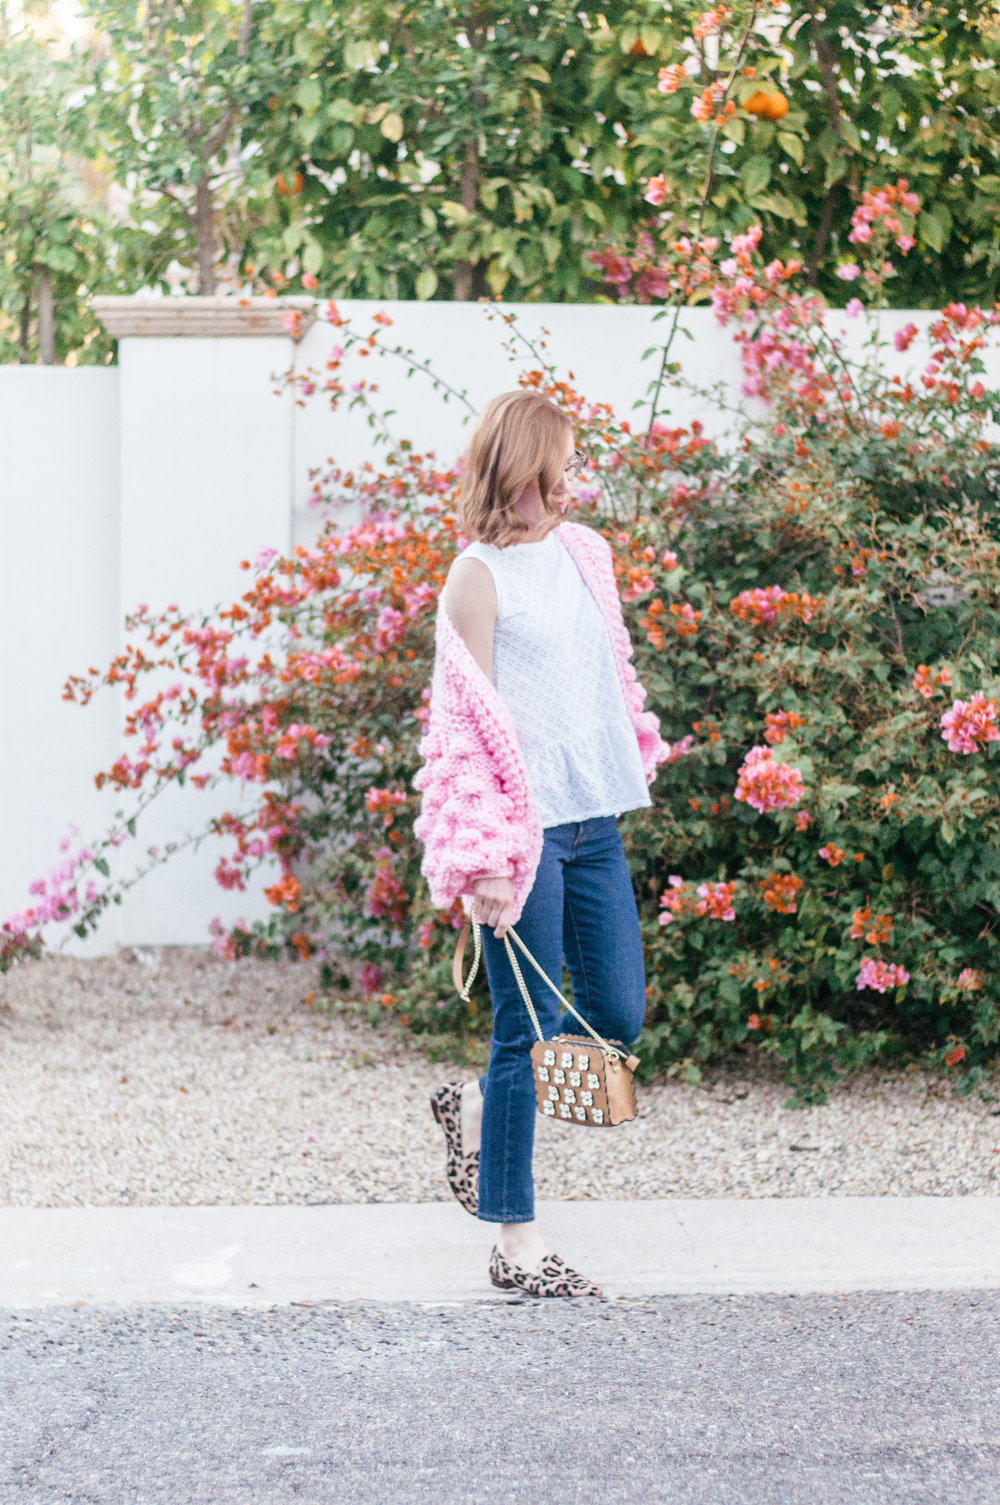 Casual Spring Outfit with Pink Chicwish Sweater, Anthropologie Eyelet Top, Levi's Wedgie Icon Jeans